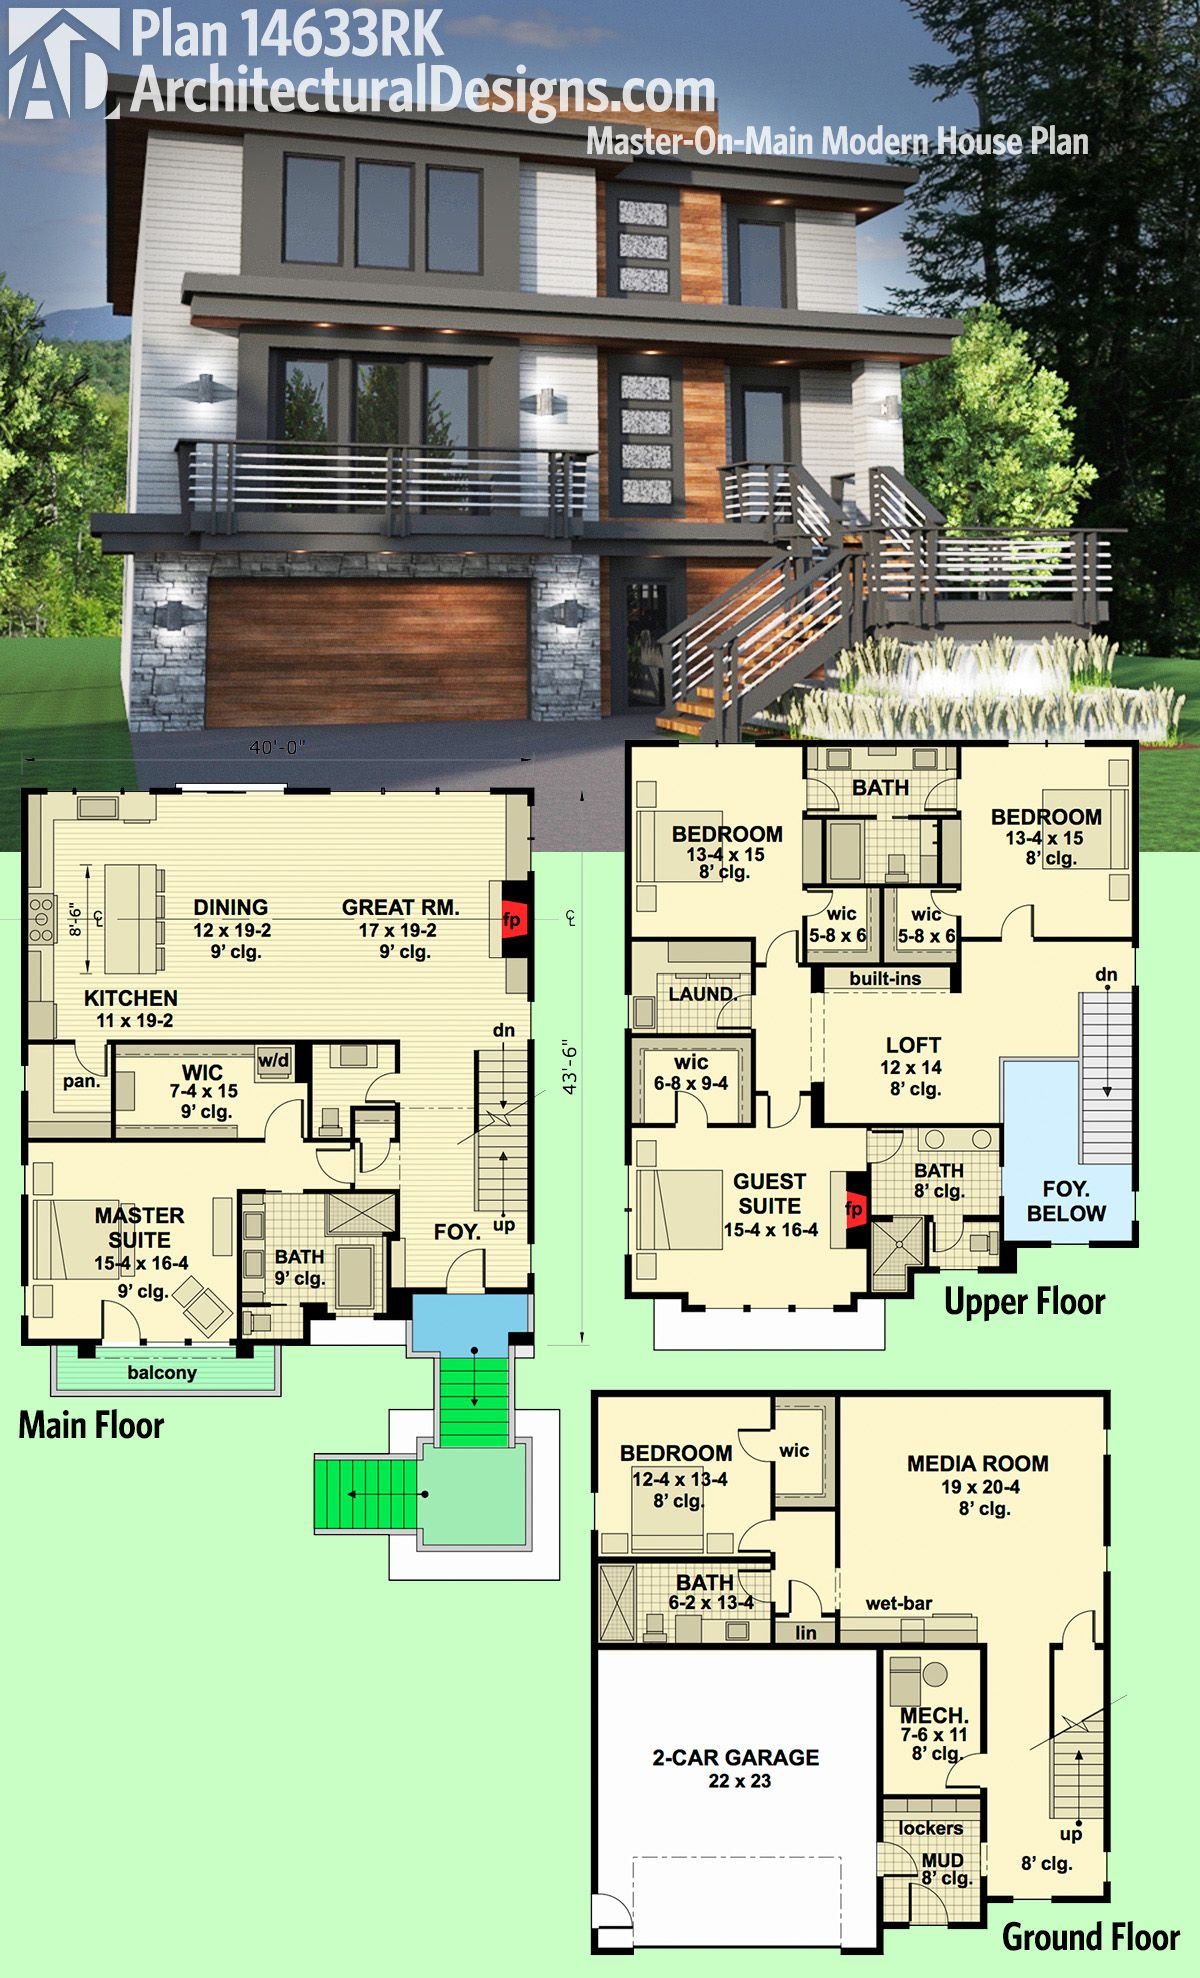 Plan 14633rk master on main modern house plan modern for Free home architecture design